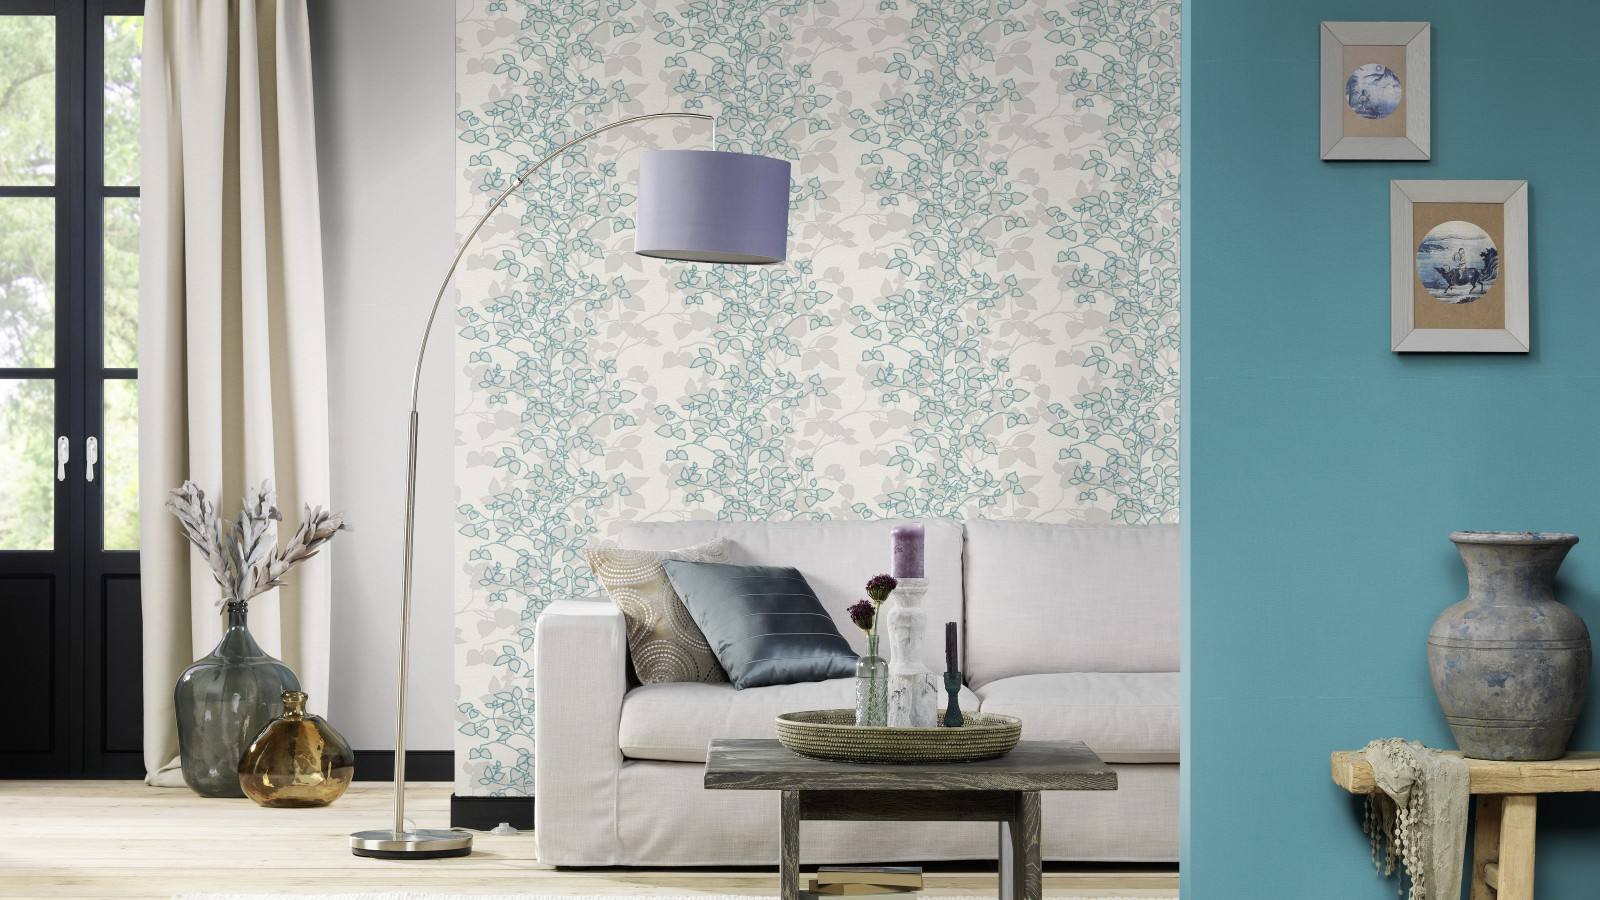 Barbara Becker Tapete T?rkis : Wallpaper Rasch Home Vision leaf white turquoise 730258